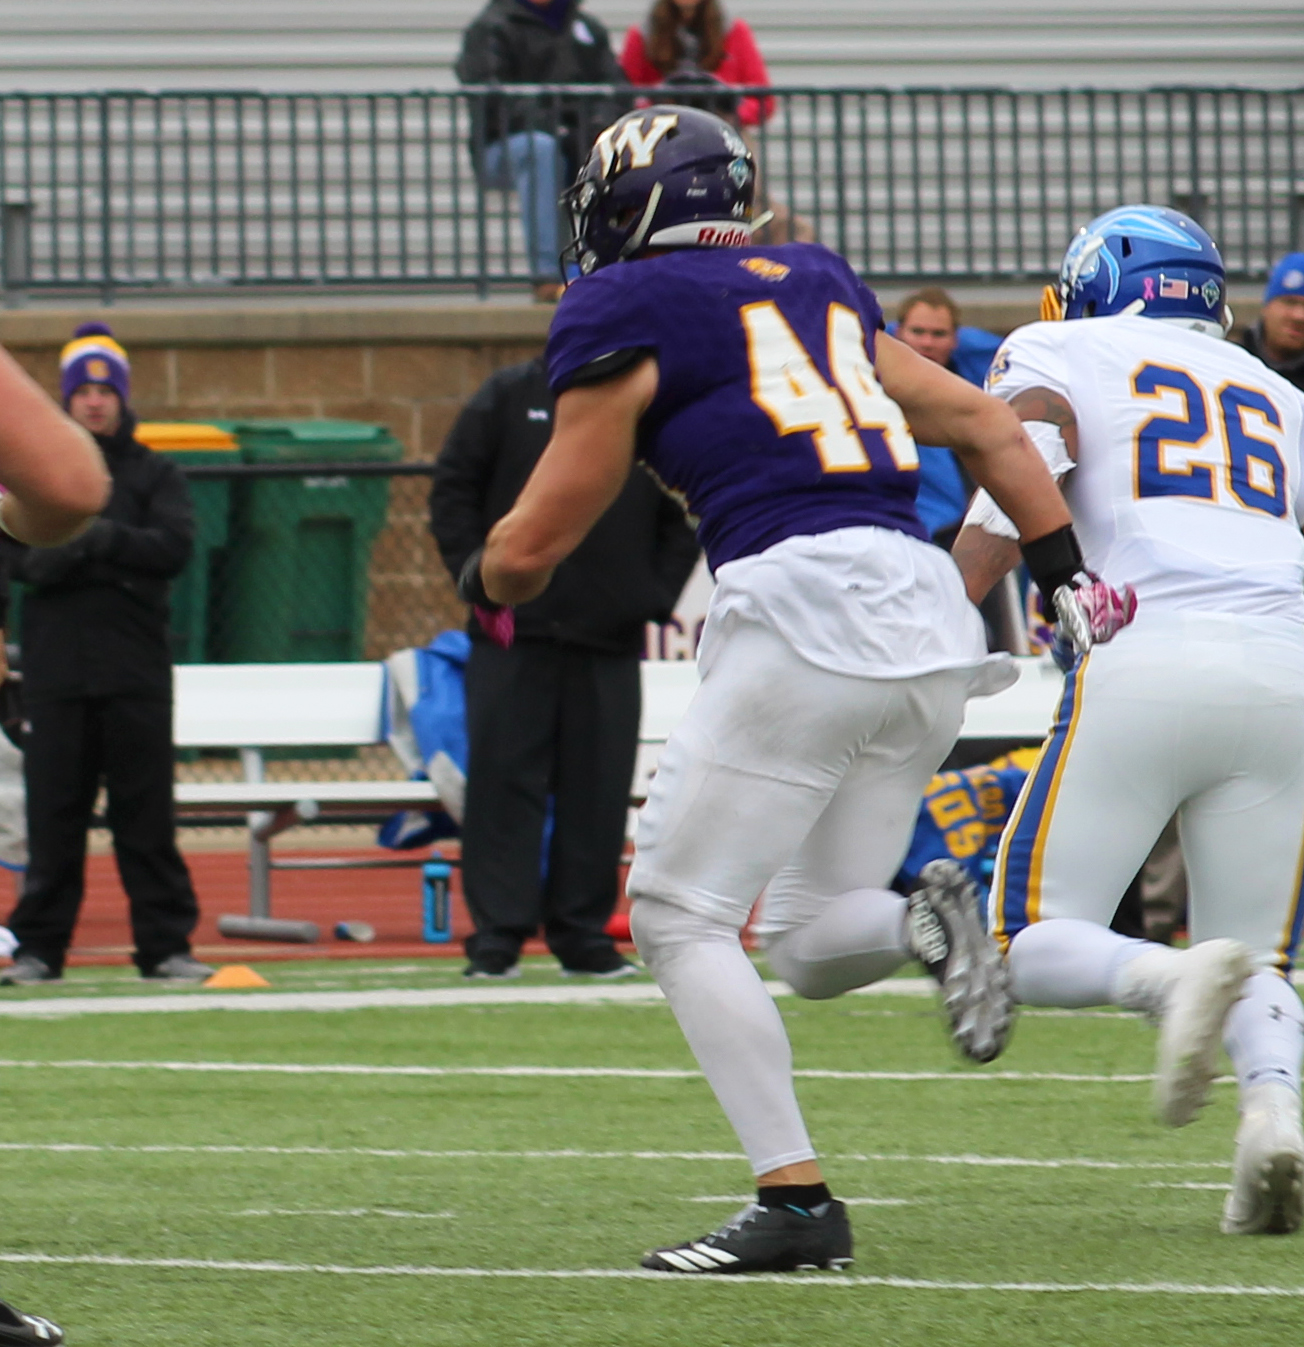 Brett Taylor chases down a South Dakota State University running back to stop a touchdown.